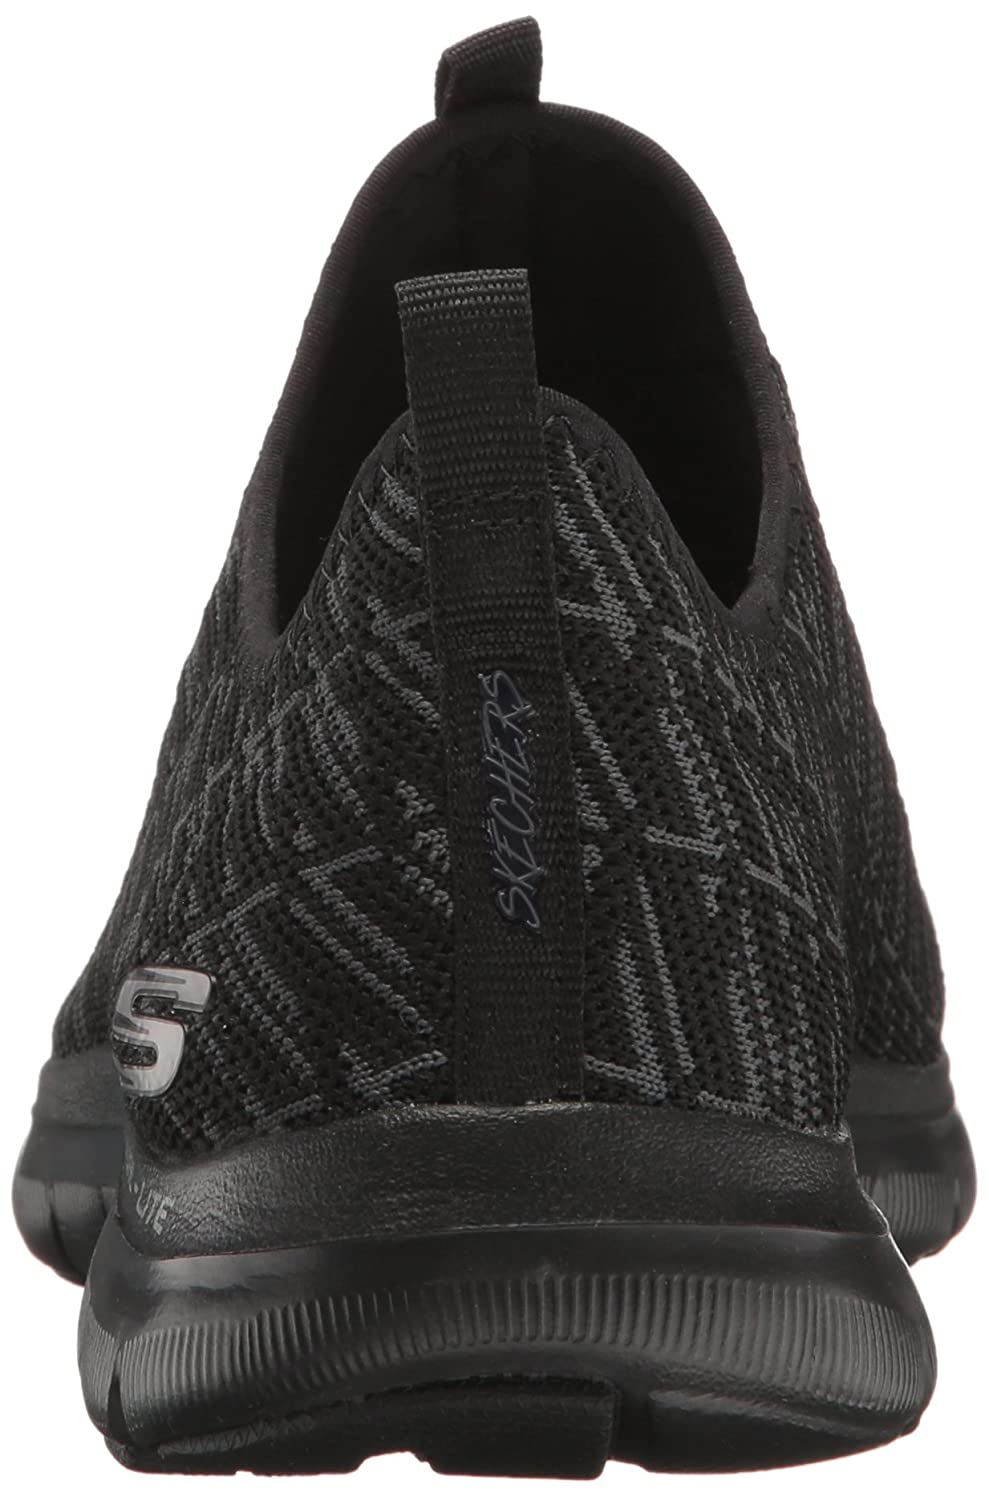 Skechers  12765,  Damen Sneakers Schwarz (Black)